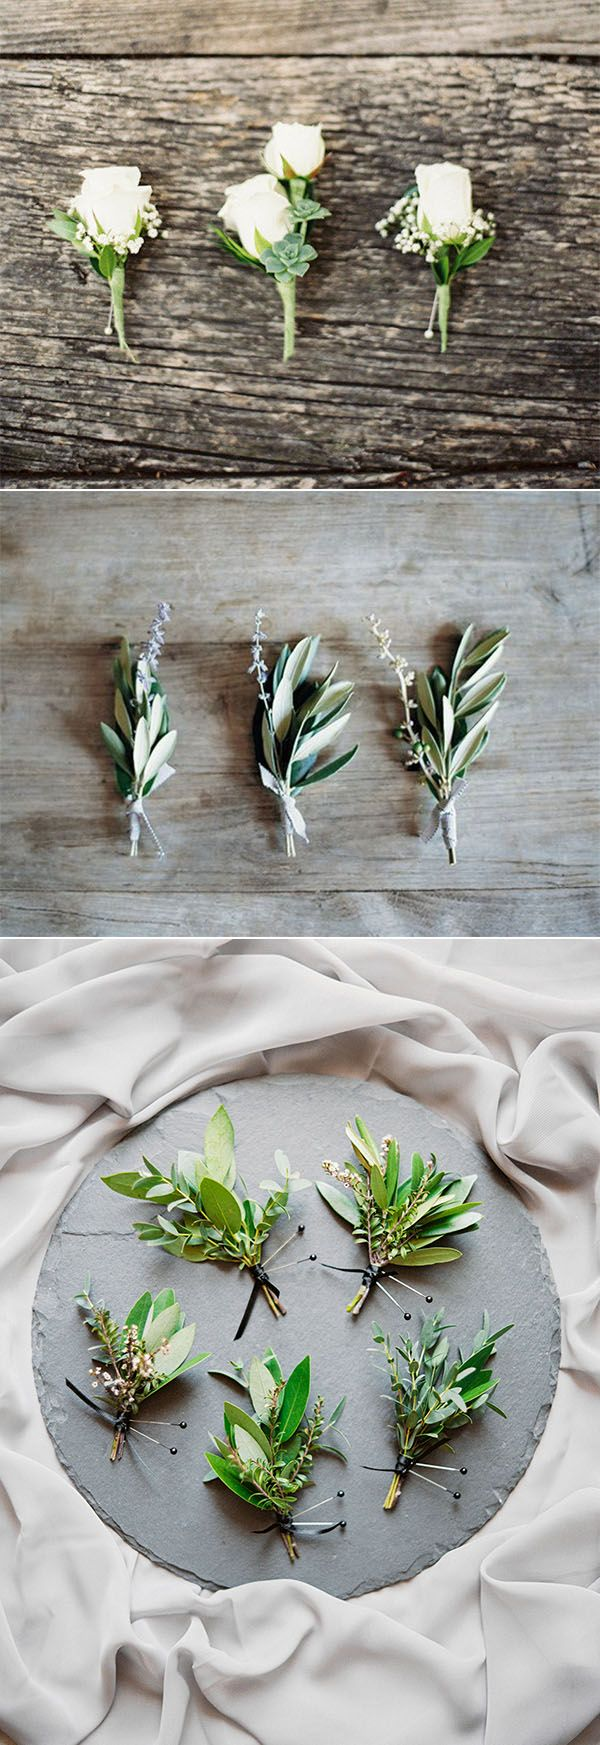 Simple u Chic Organic Minimalist Weddings Ideas for NonTraditional